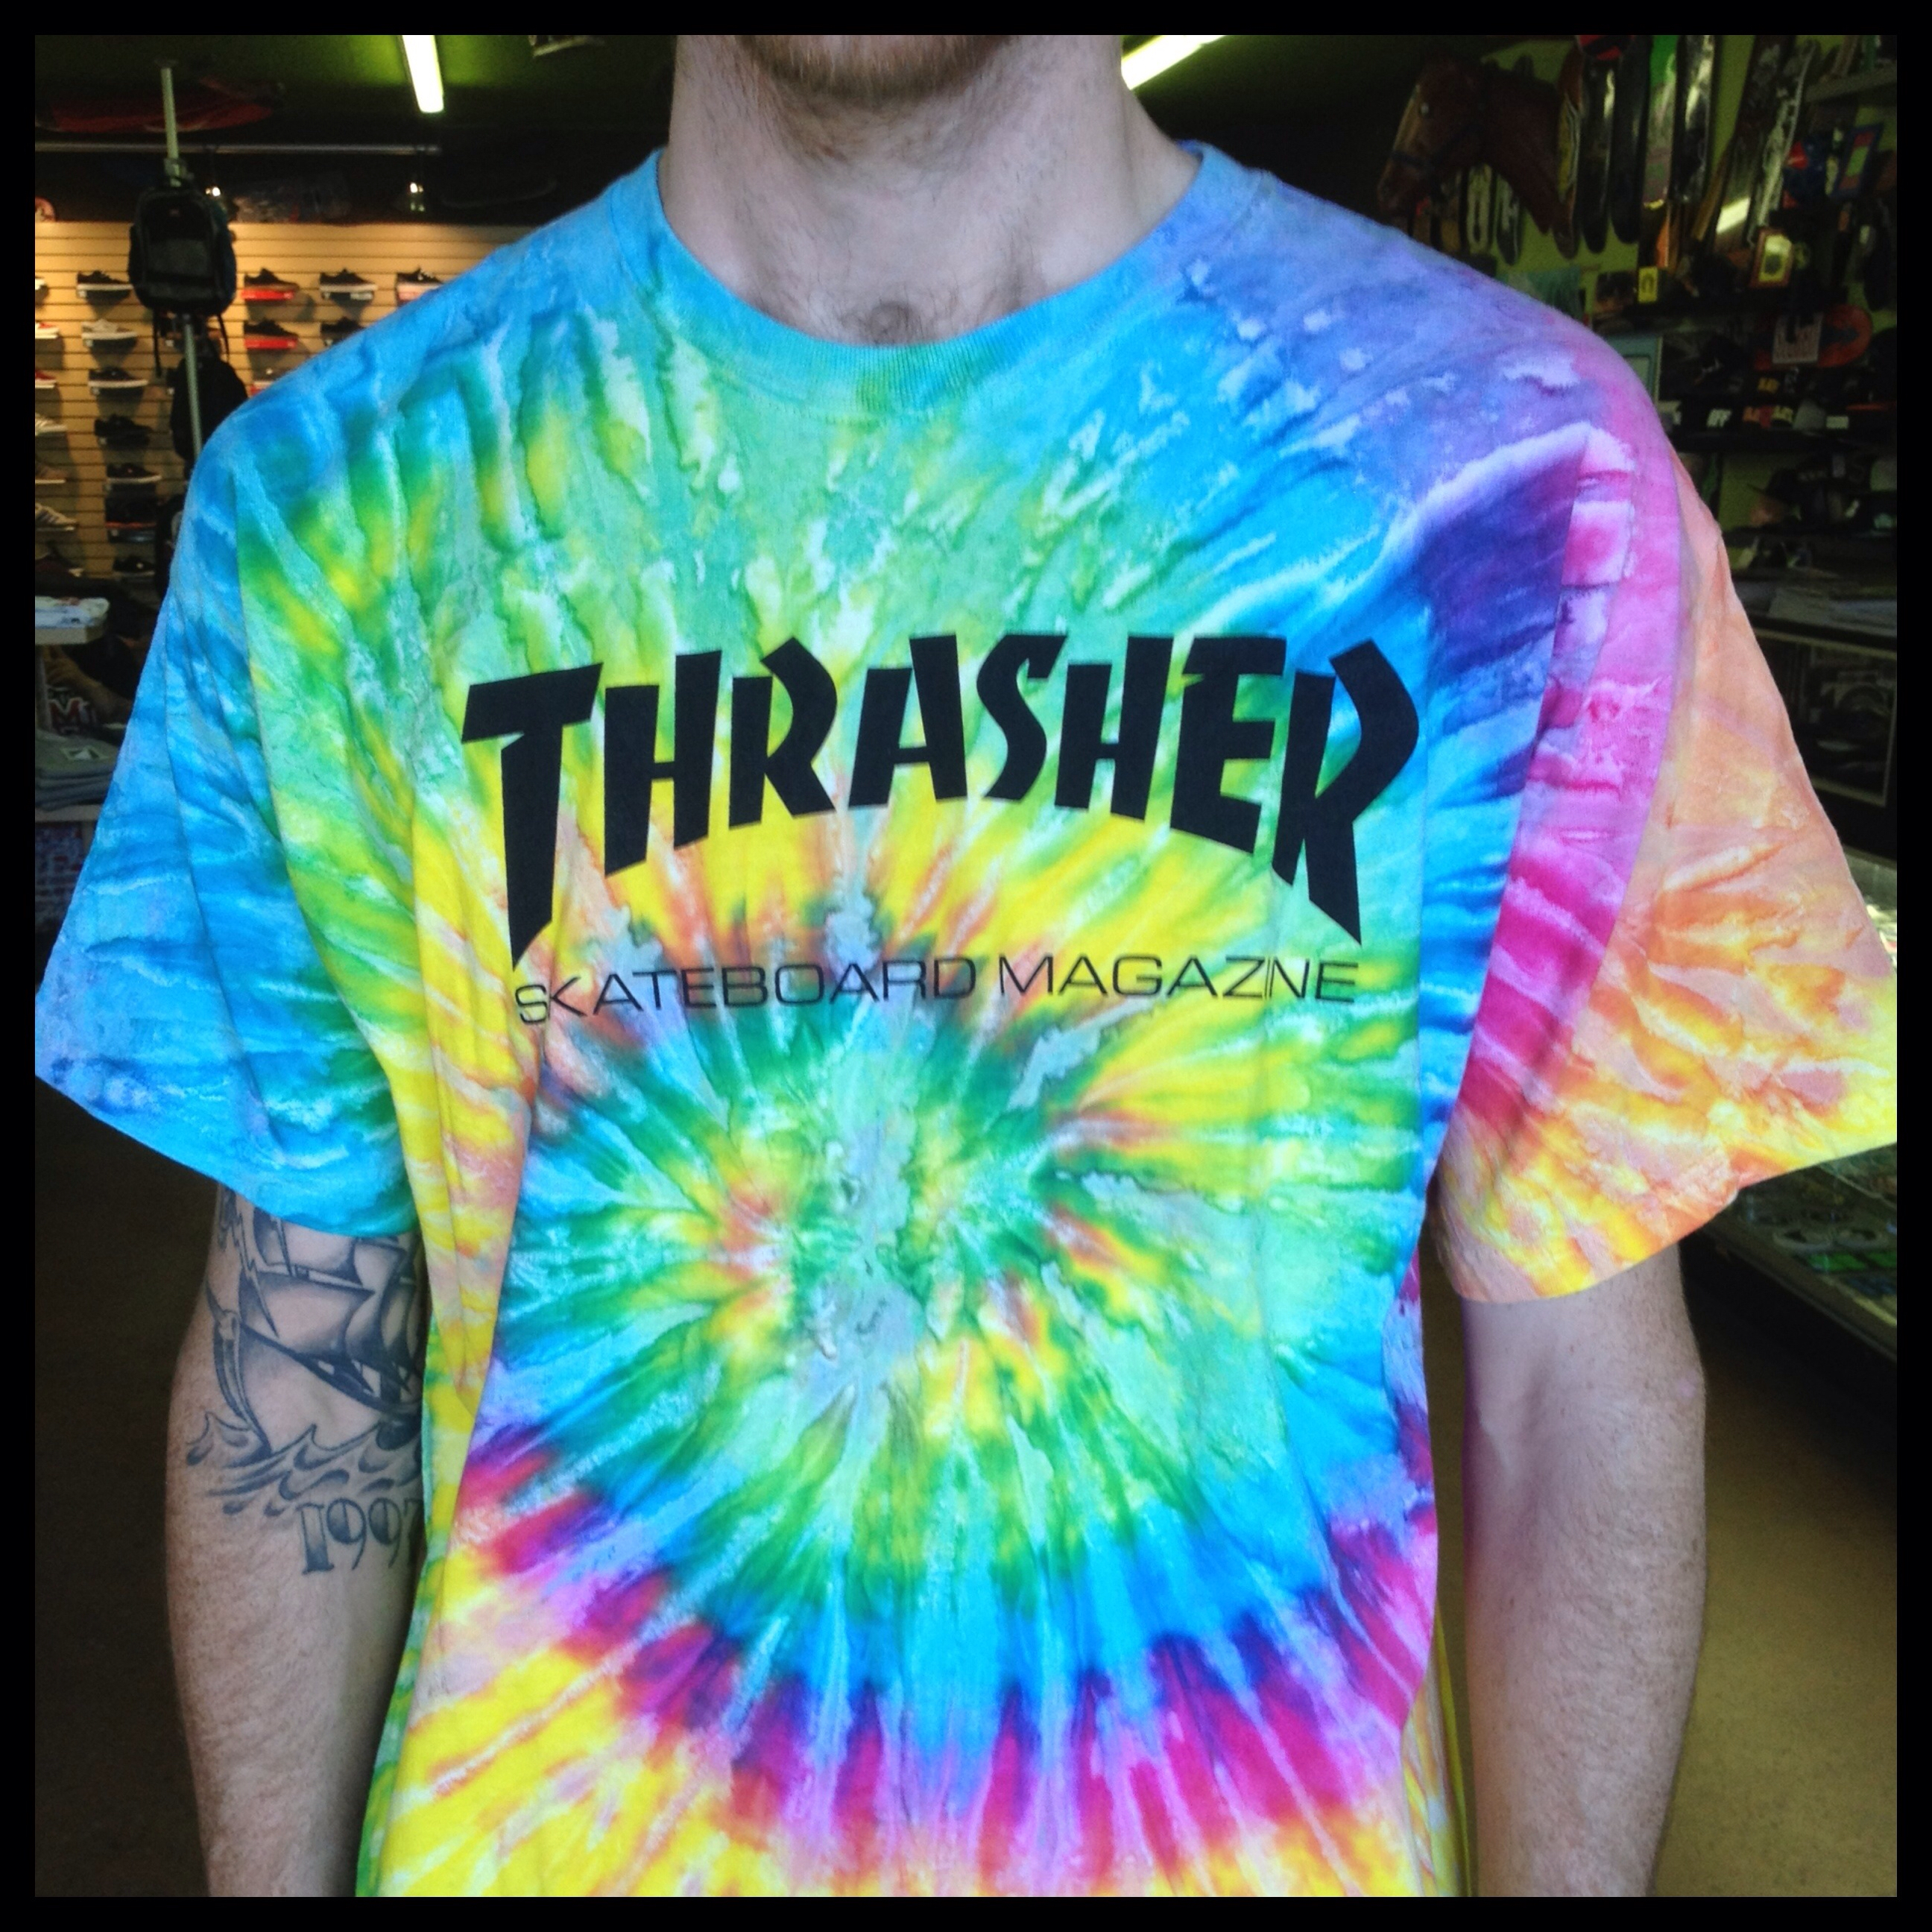 thrasher tie dye shirt photo - 1